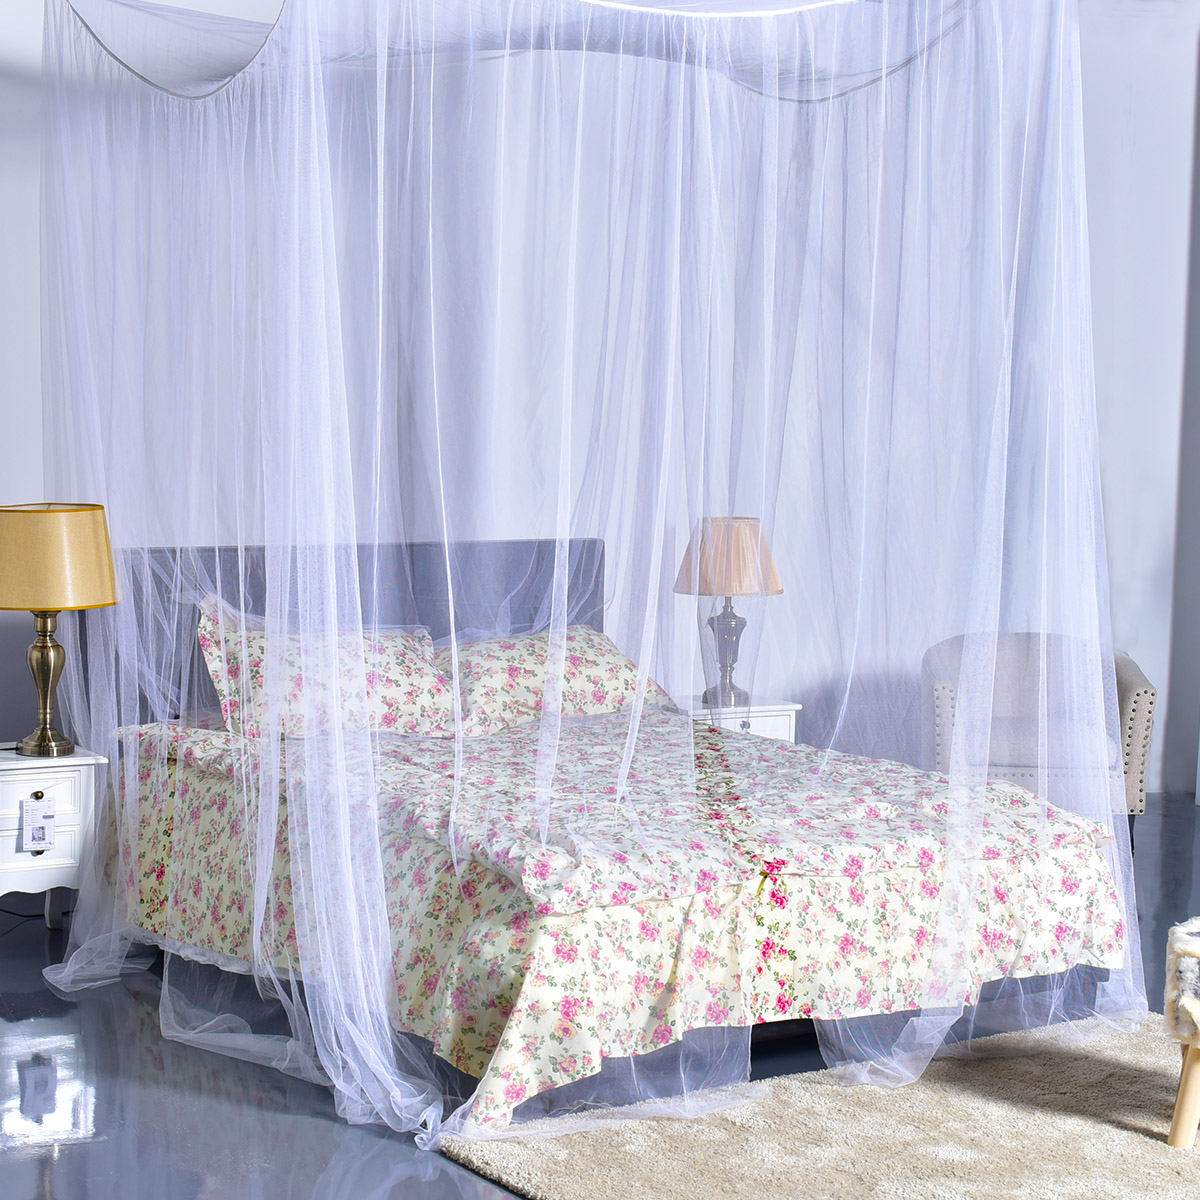 White Bed Canopy 4 corner post bed canopy mosquito net full queen king size netting